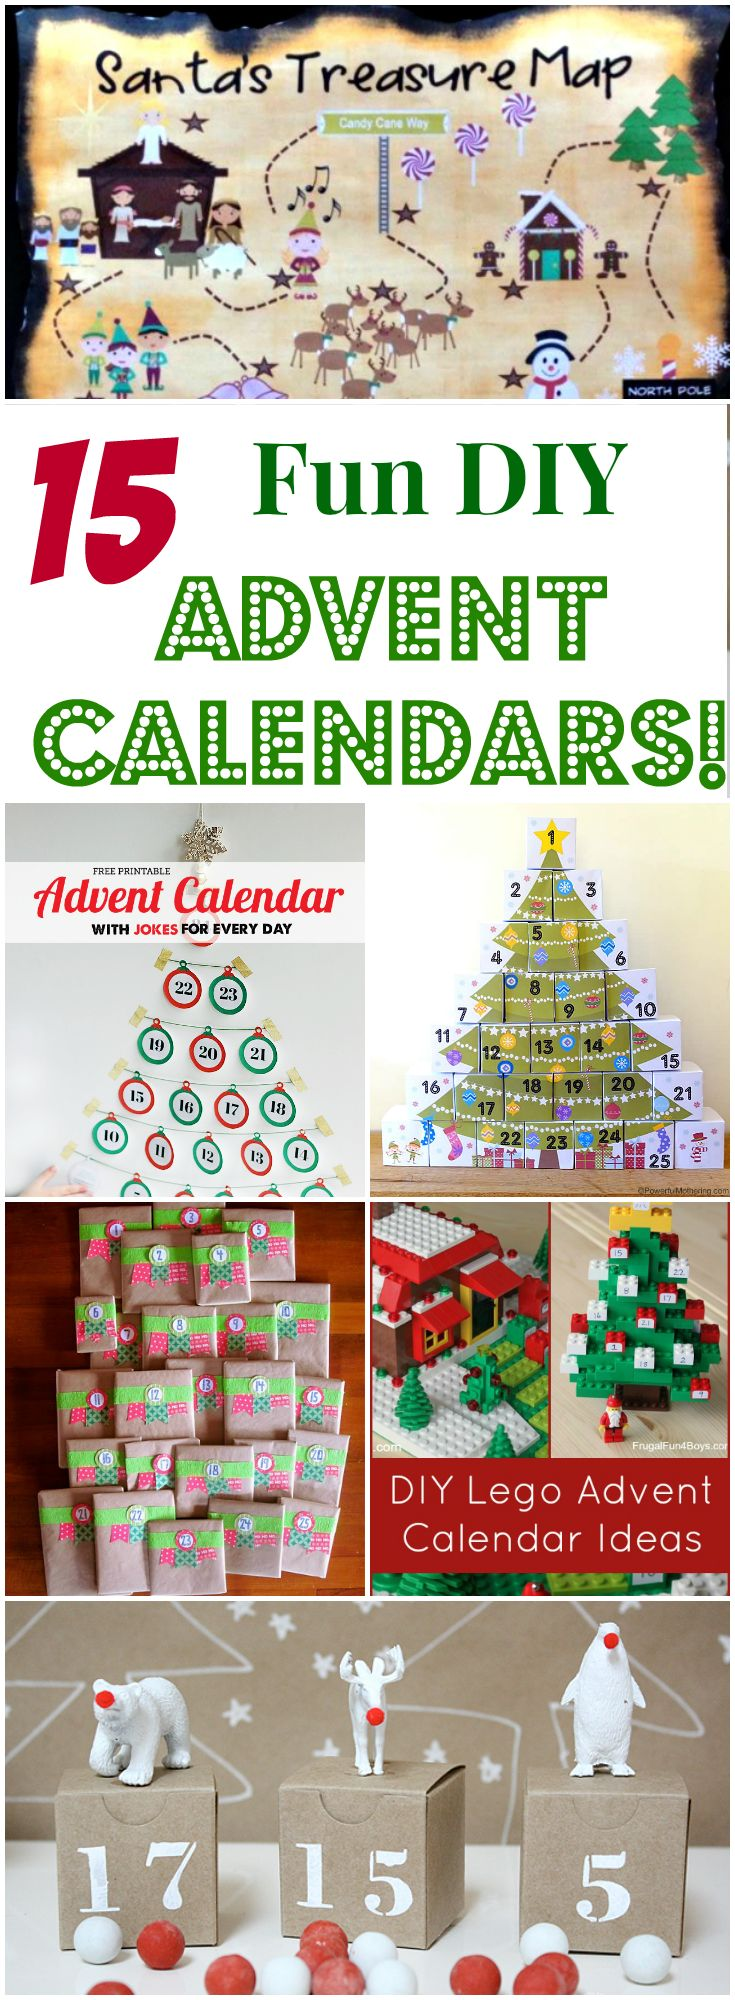 Diy Childrens Advent Calendar : Fun diy advent calendars for kids letters from santa